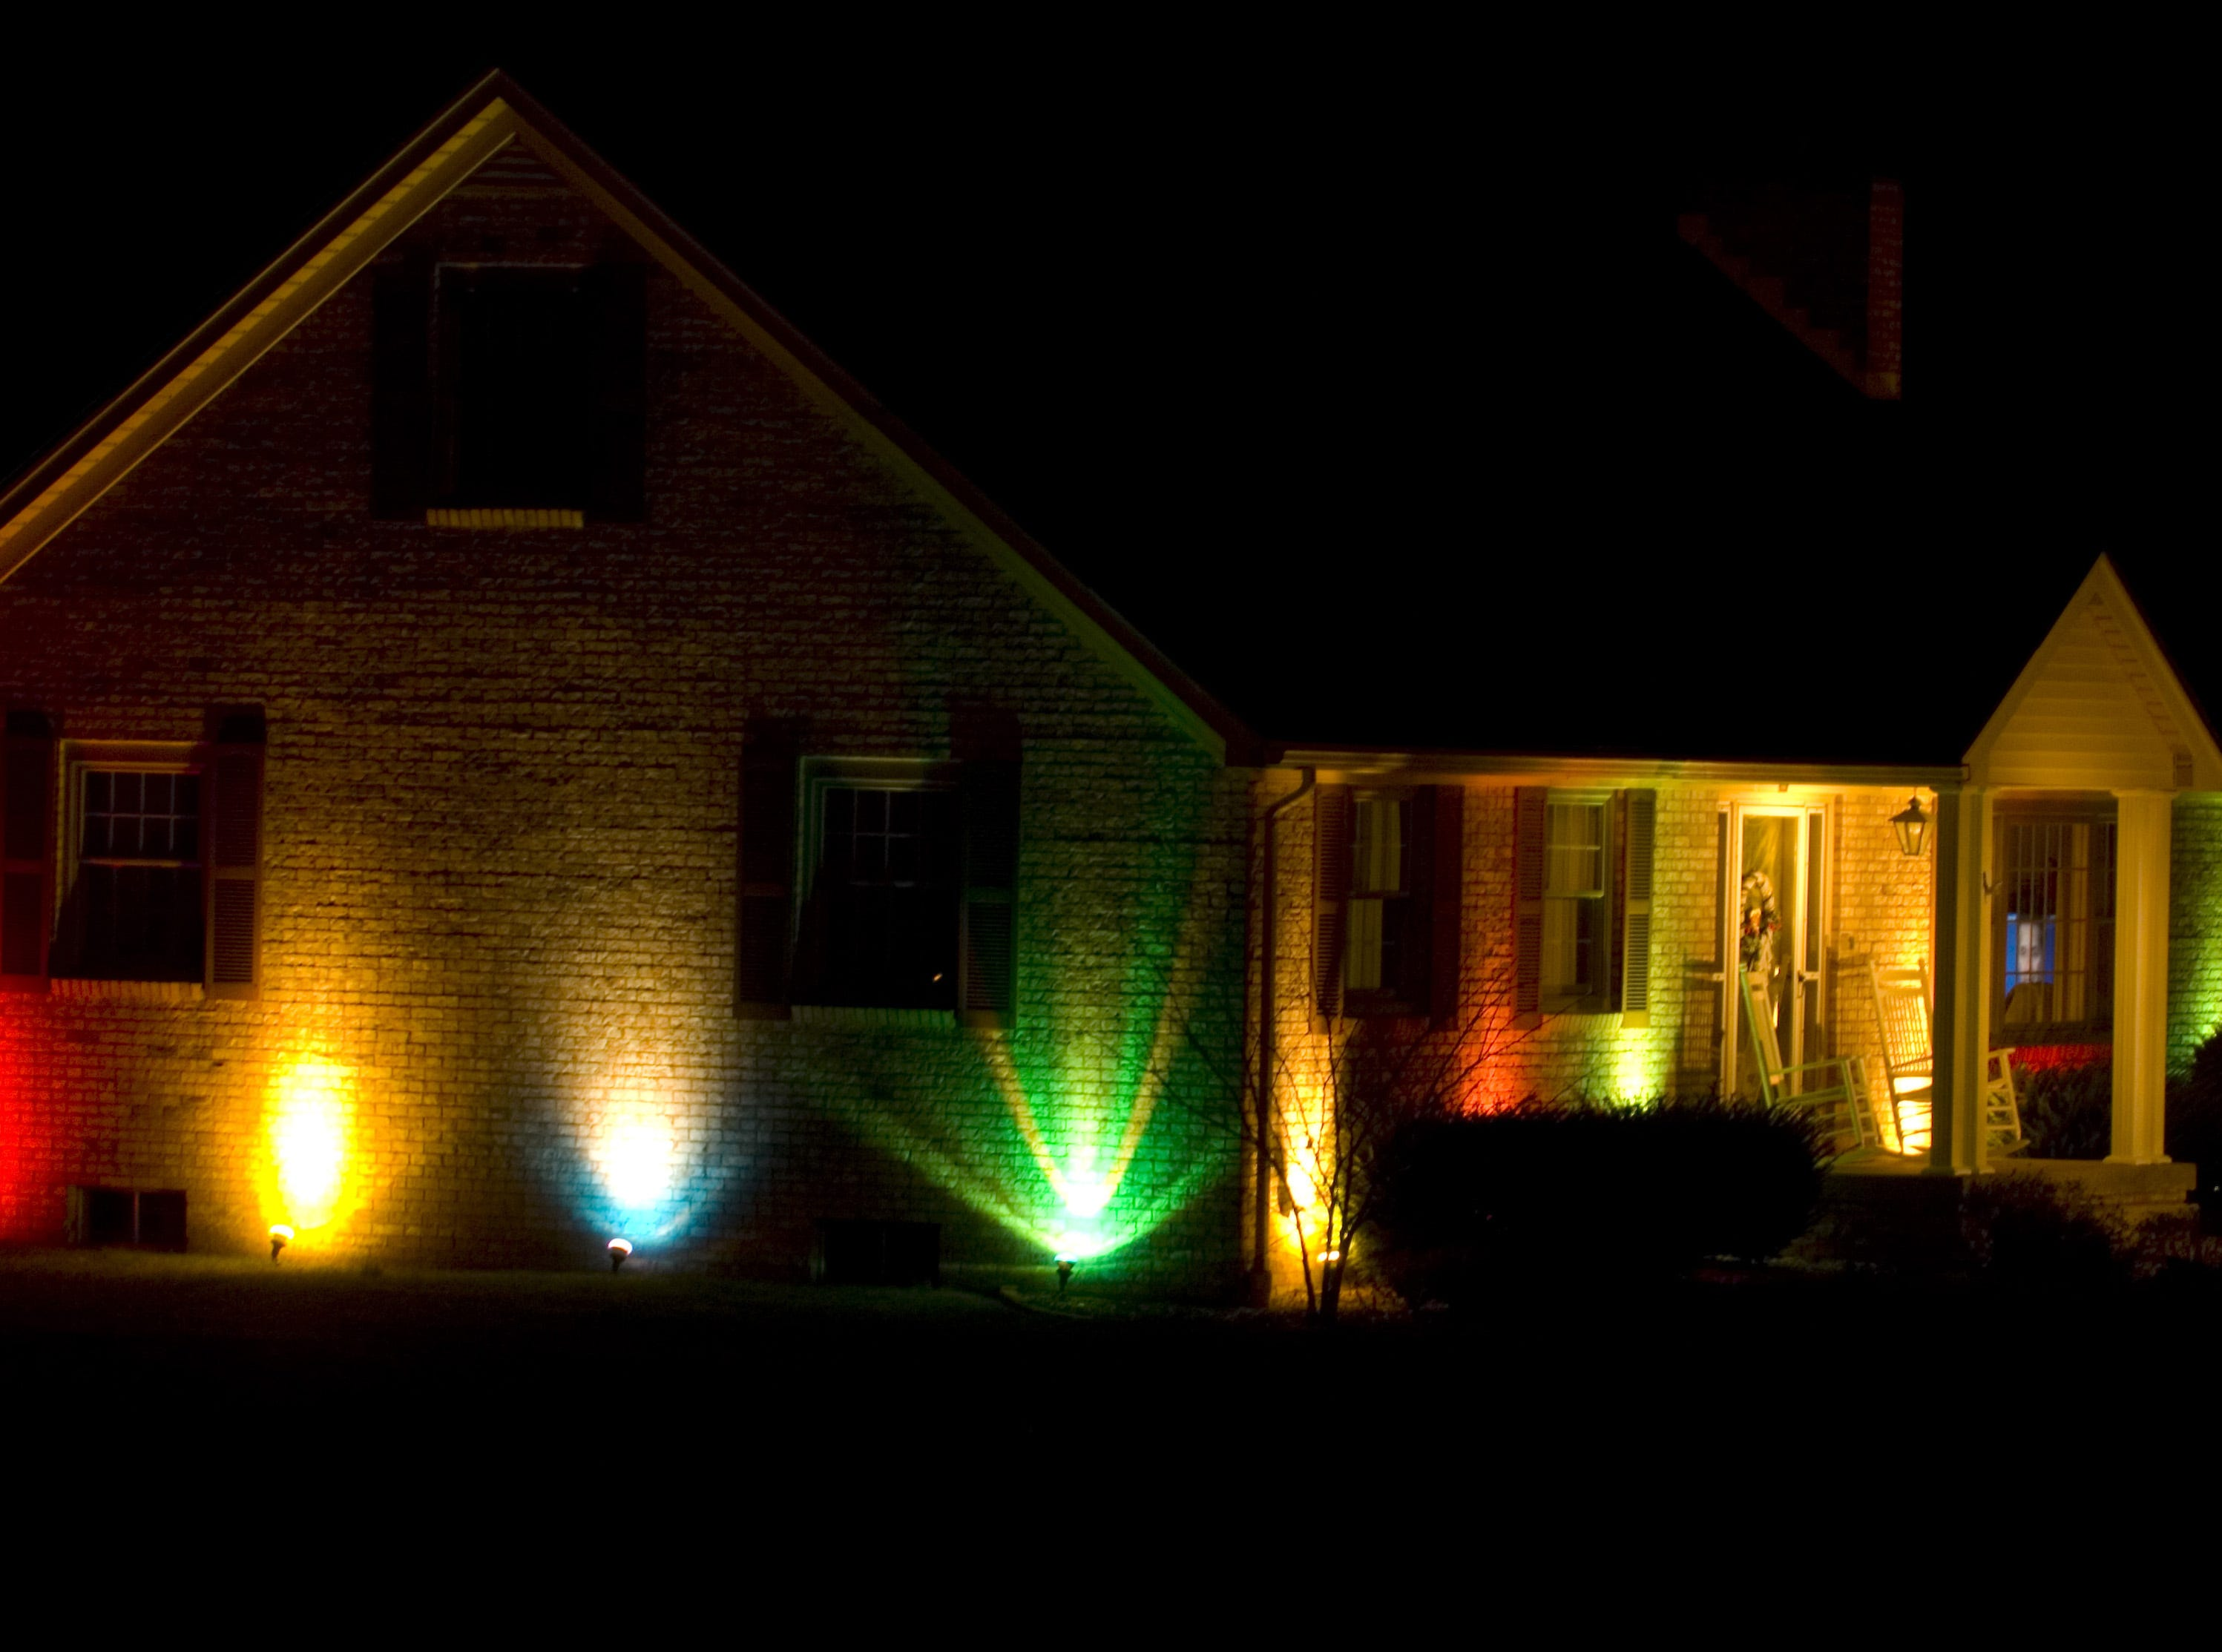 A Warrick County home decked out in lights just off Hwy 66 between Yankeetown and Newburgh.